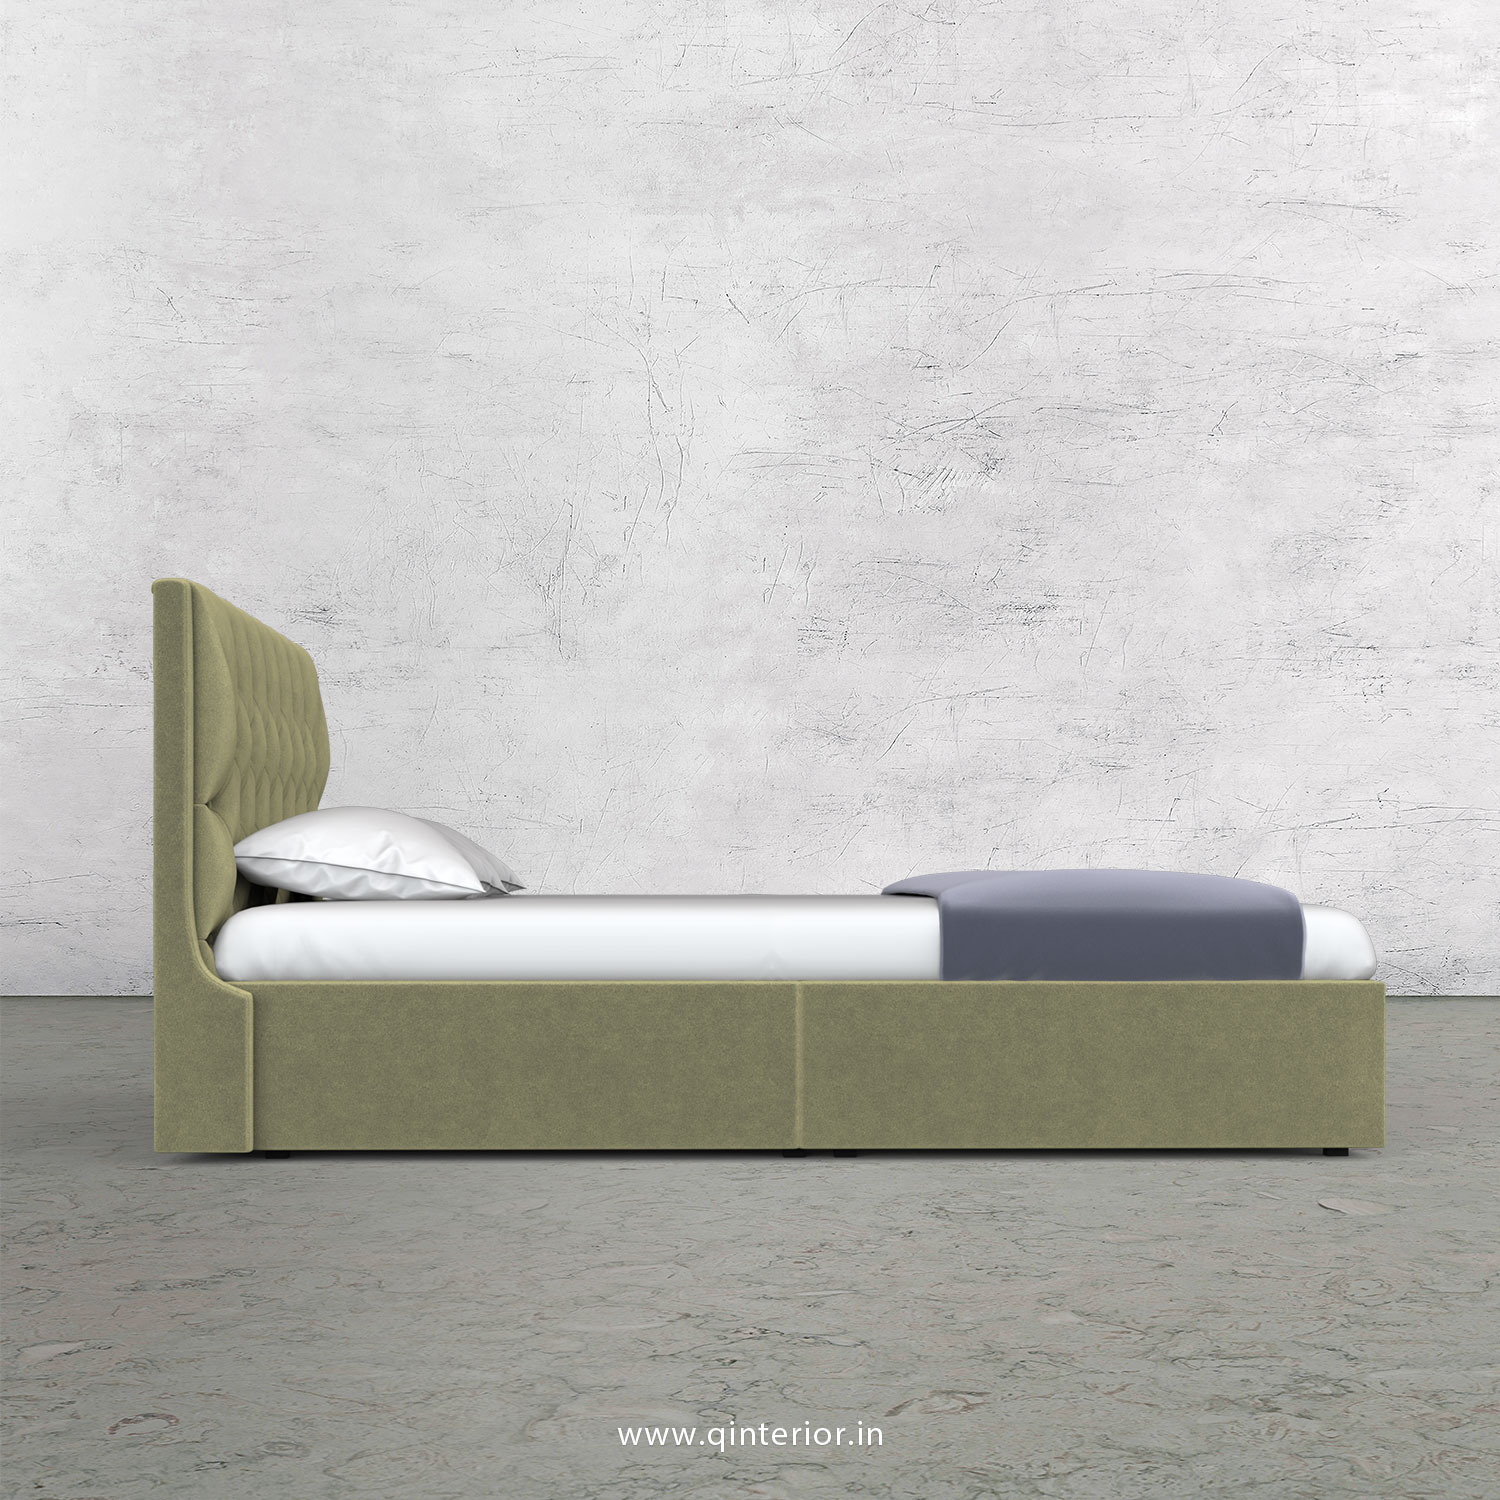 Scorpius King Size Storage Bed in Velvet Fabric - KBD001 VL04